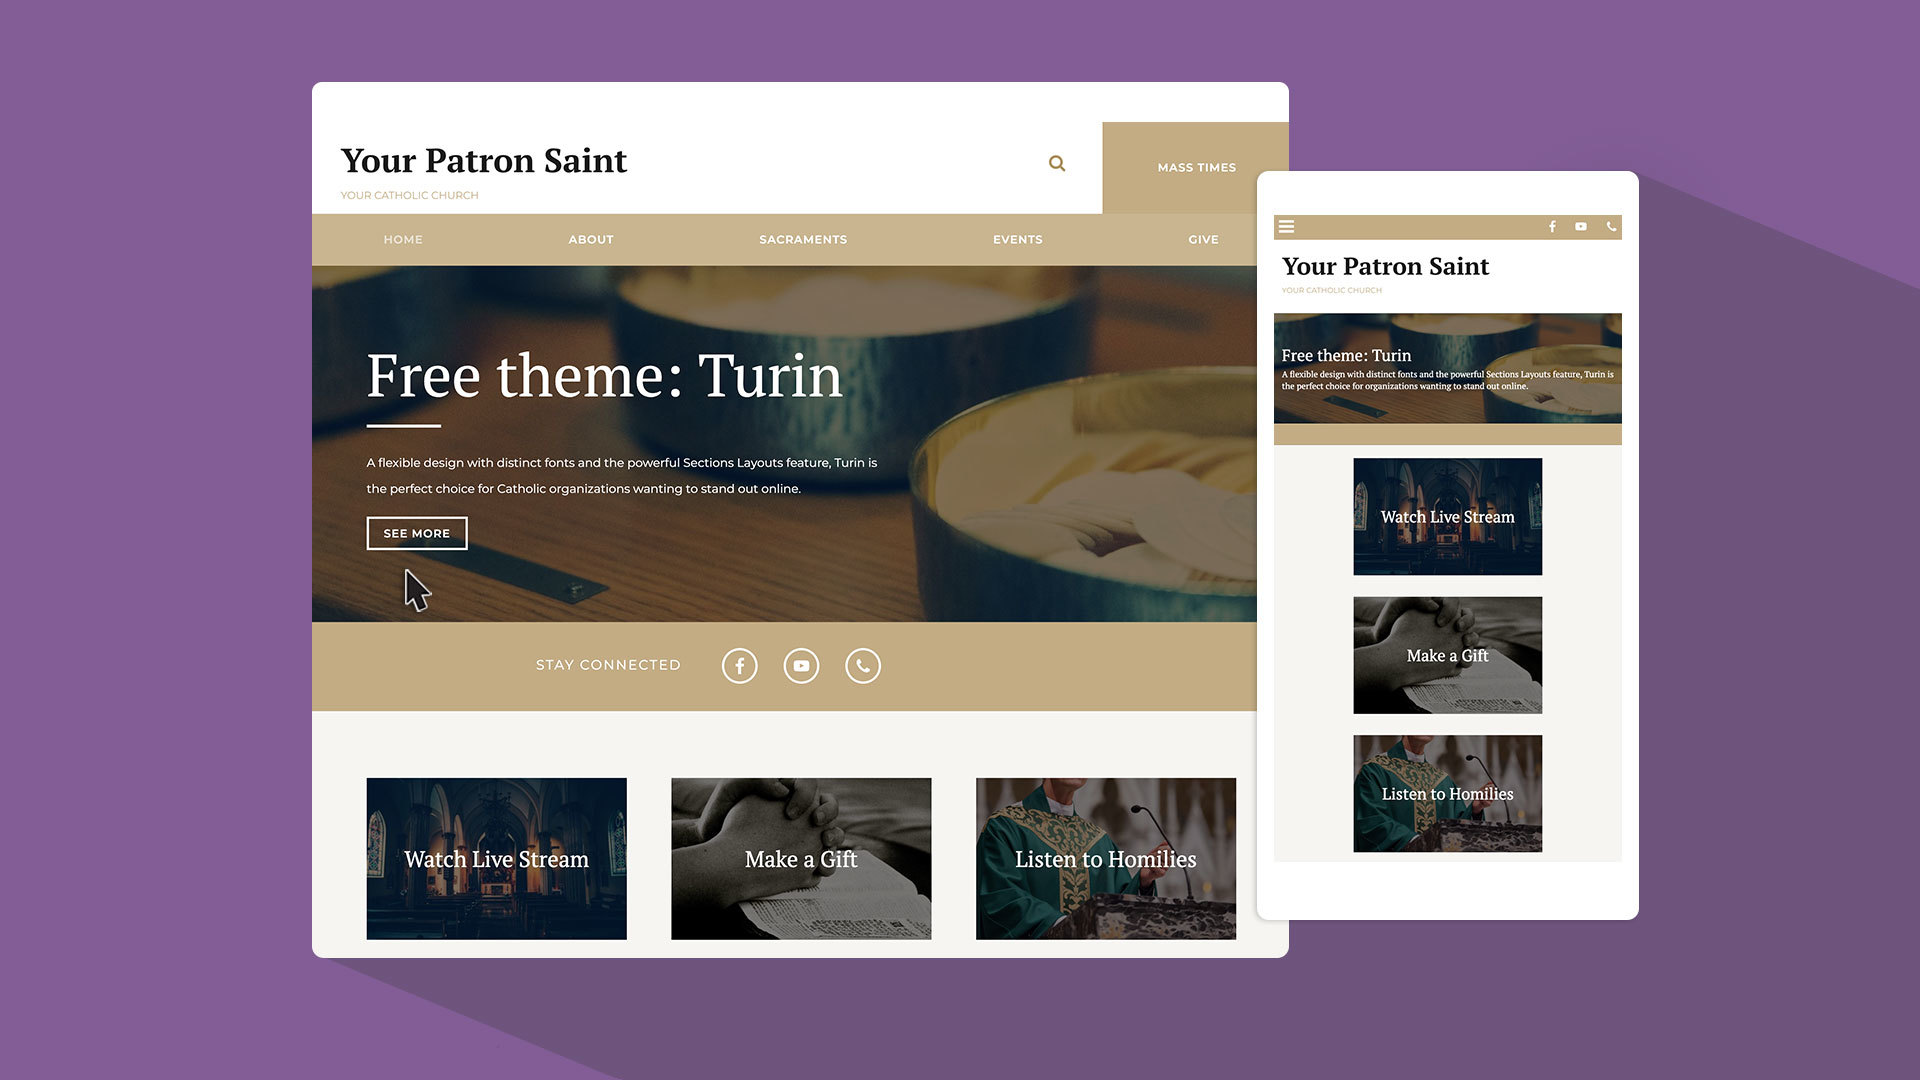 3 reasons to try Turin - eCatholic's newest free website design